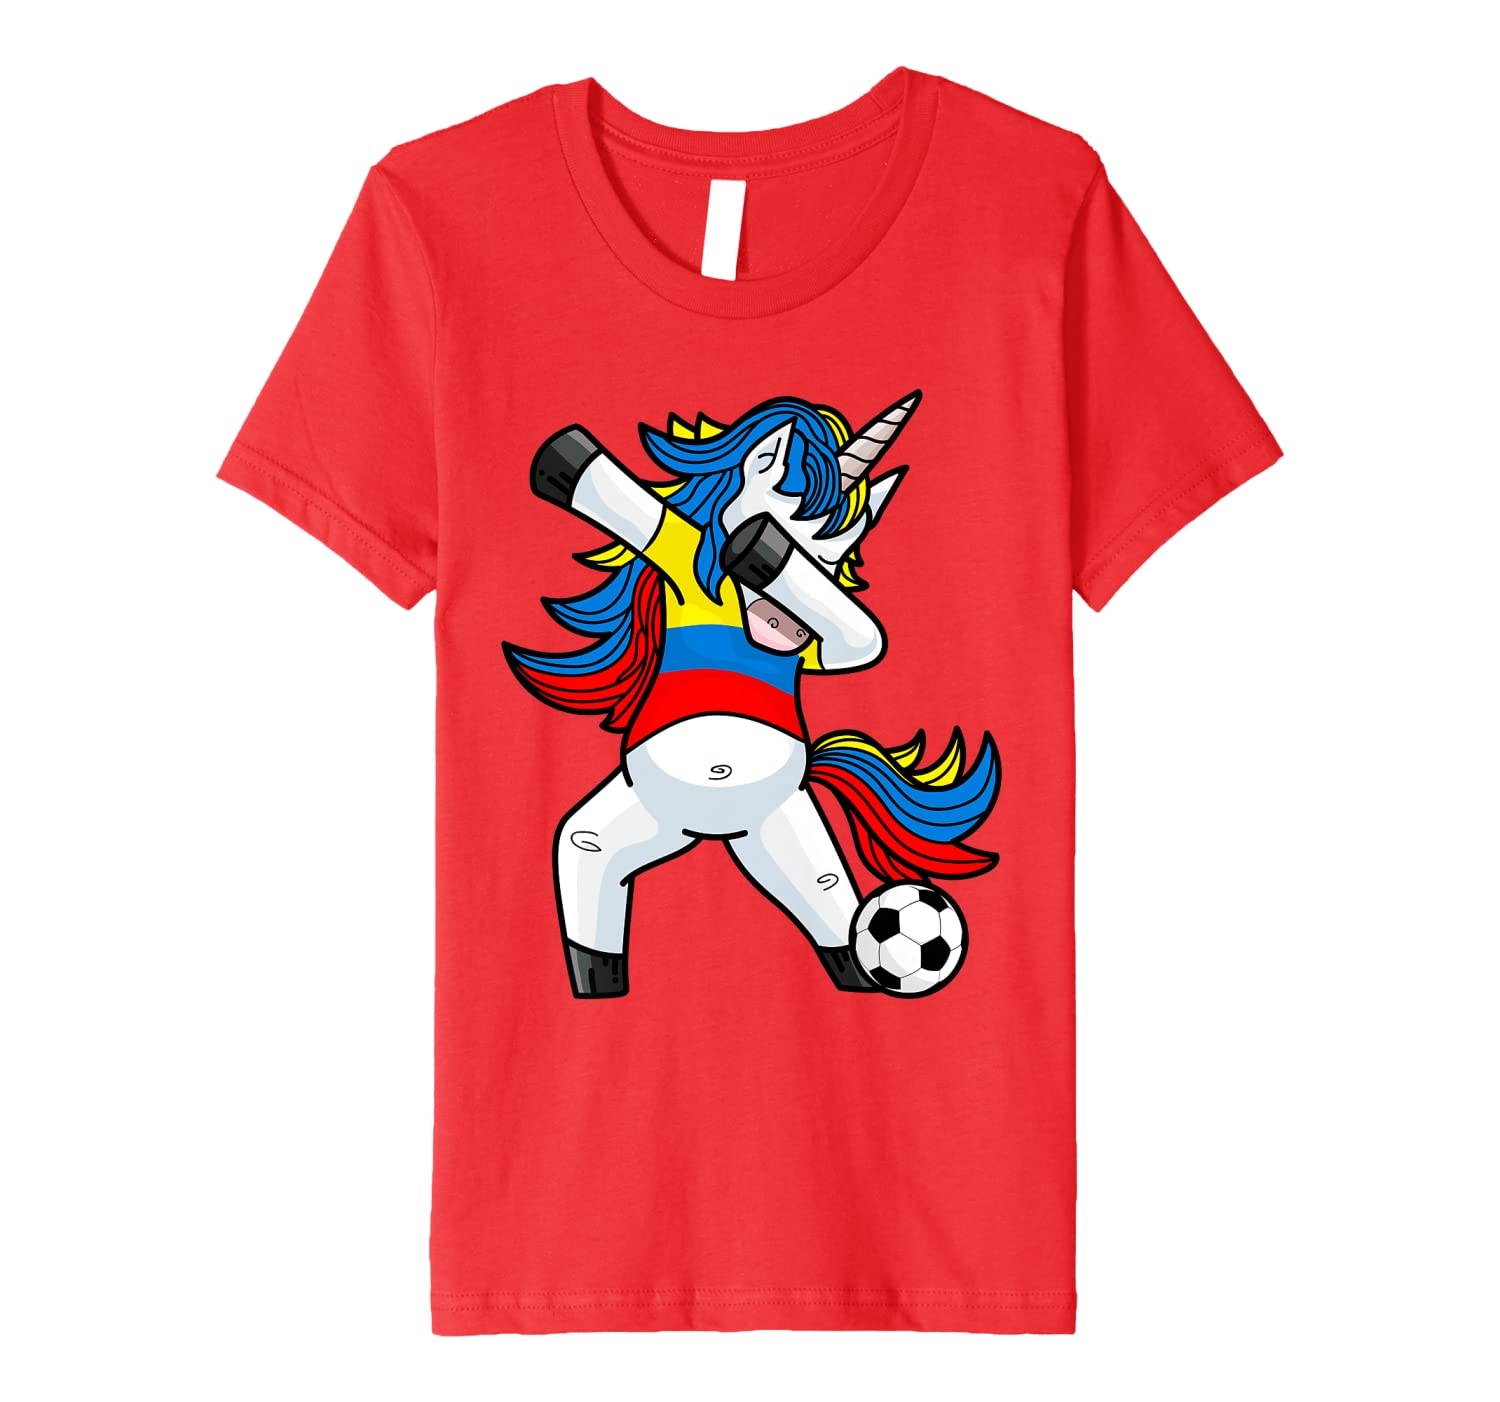 c830f804e04 Amazon.com: Dabbing Soccer Unicorn T Shirt Colombia Colombians Football:  Clothing